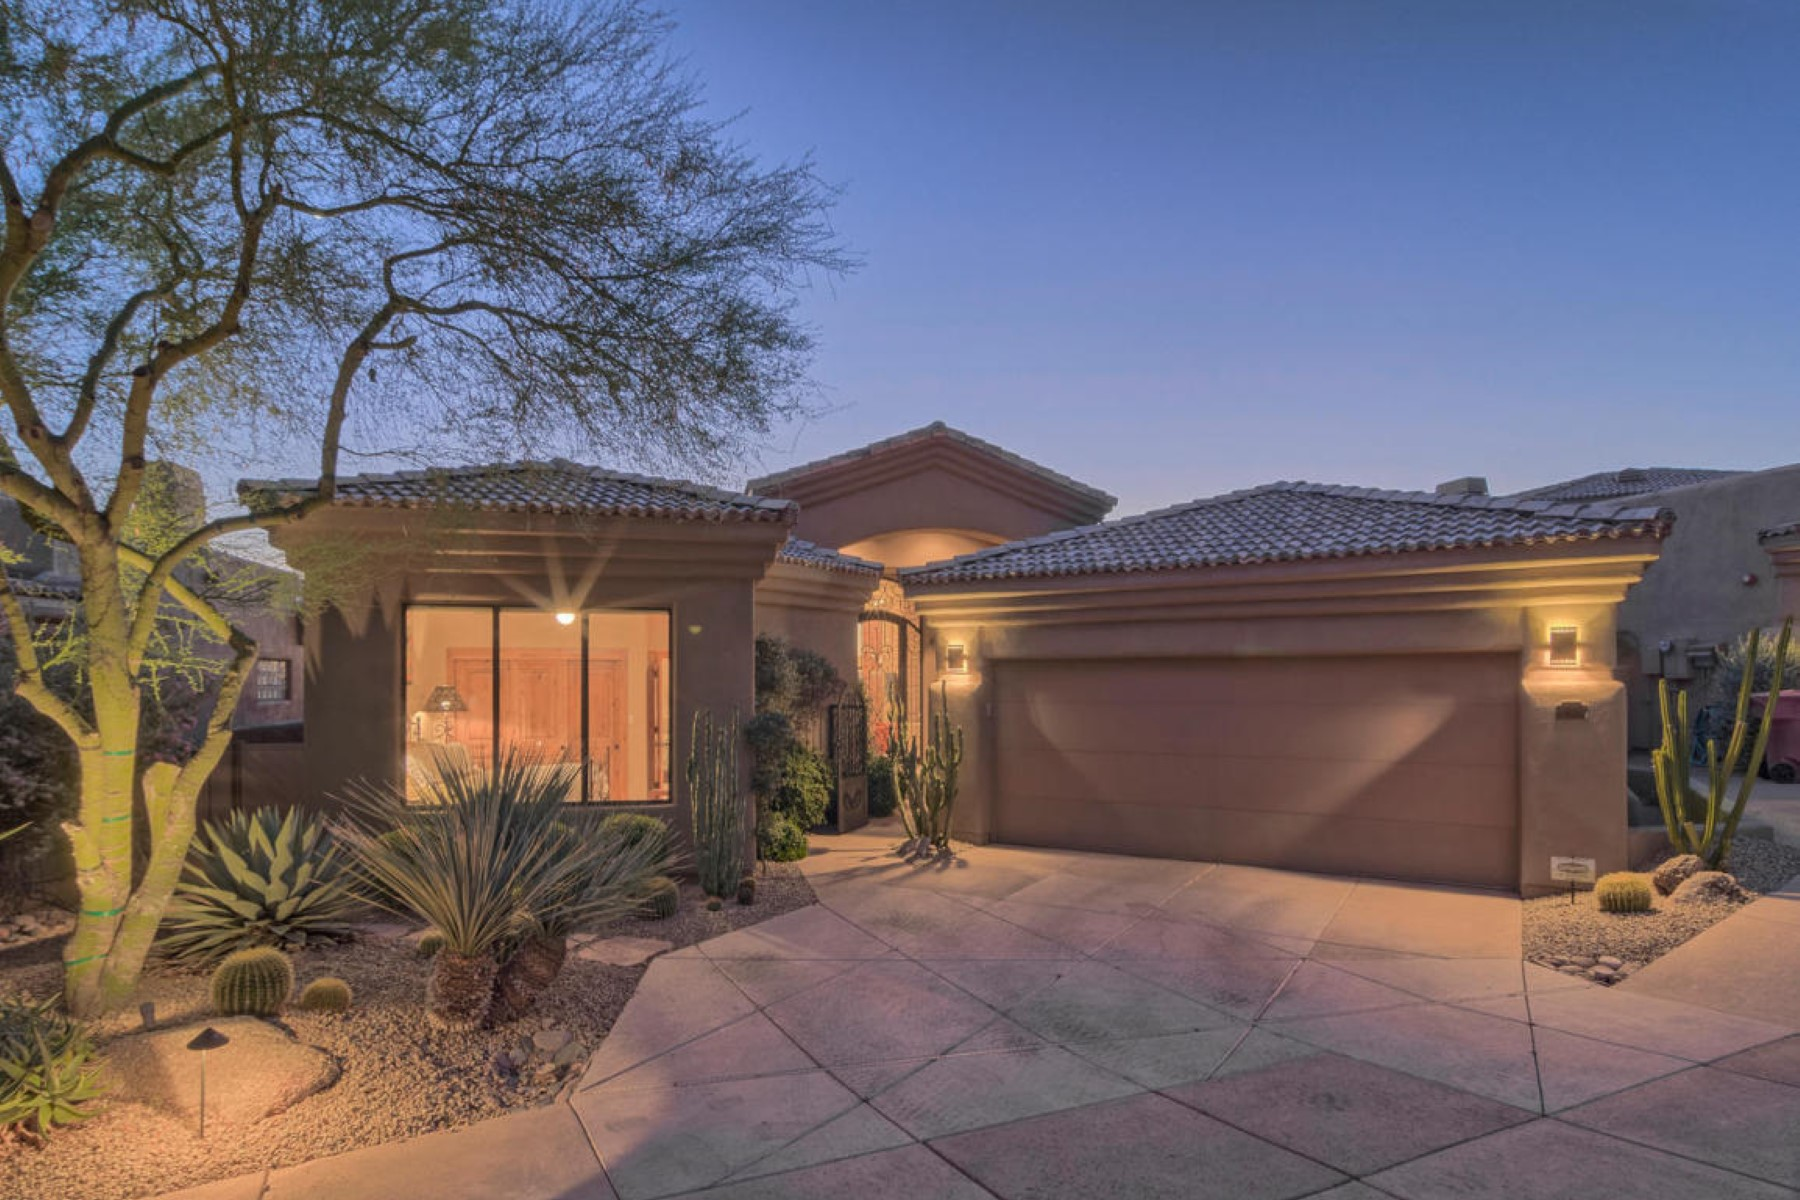 Single Family Home for Sale at Beautiful home on one of the best view lots in Trron 24350 N Whispering Ridge Way #48 Scottsdale, Arizona, 85255 United States